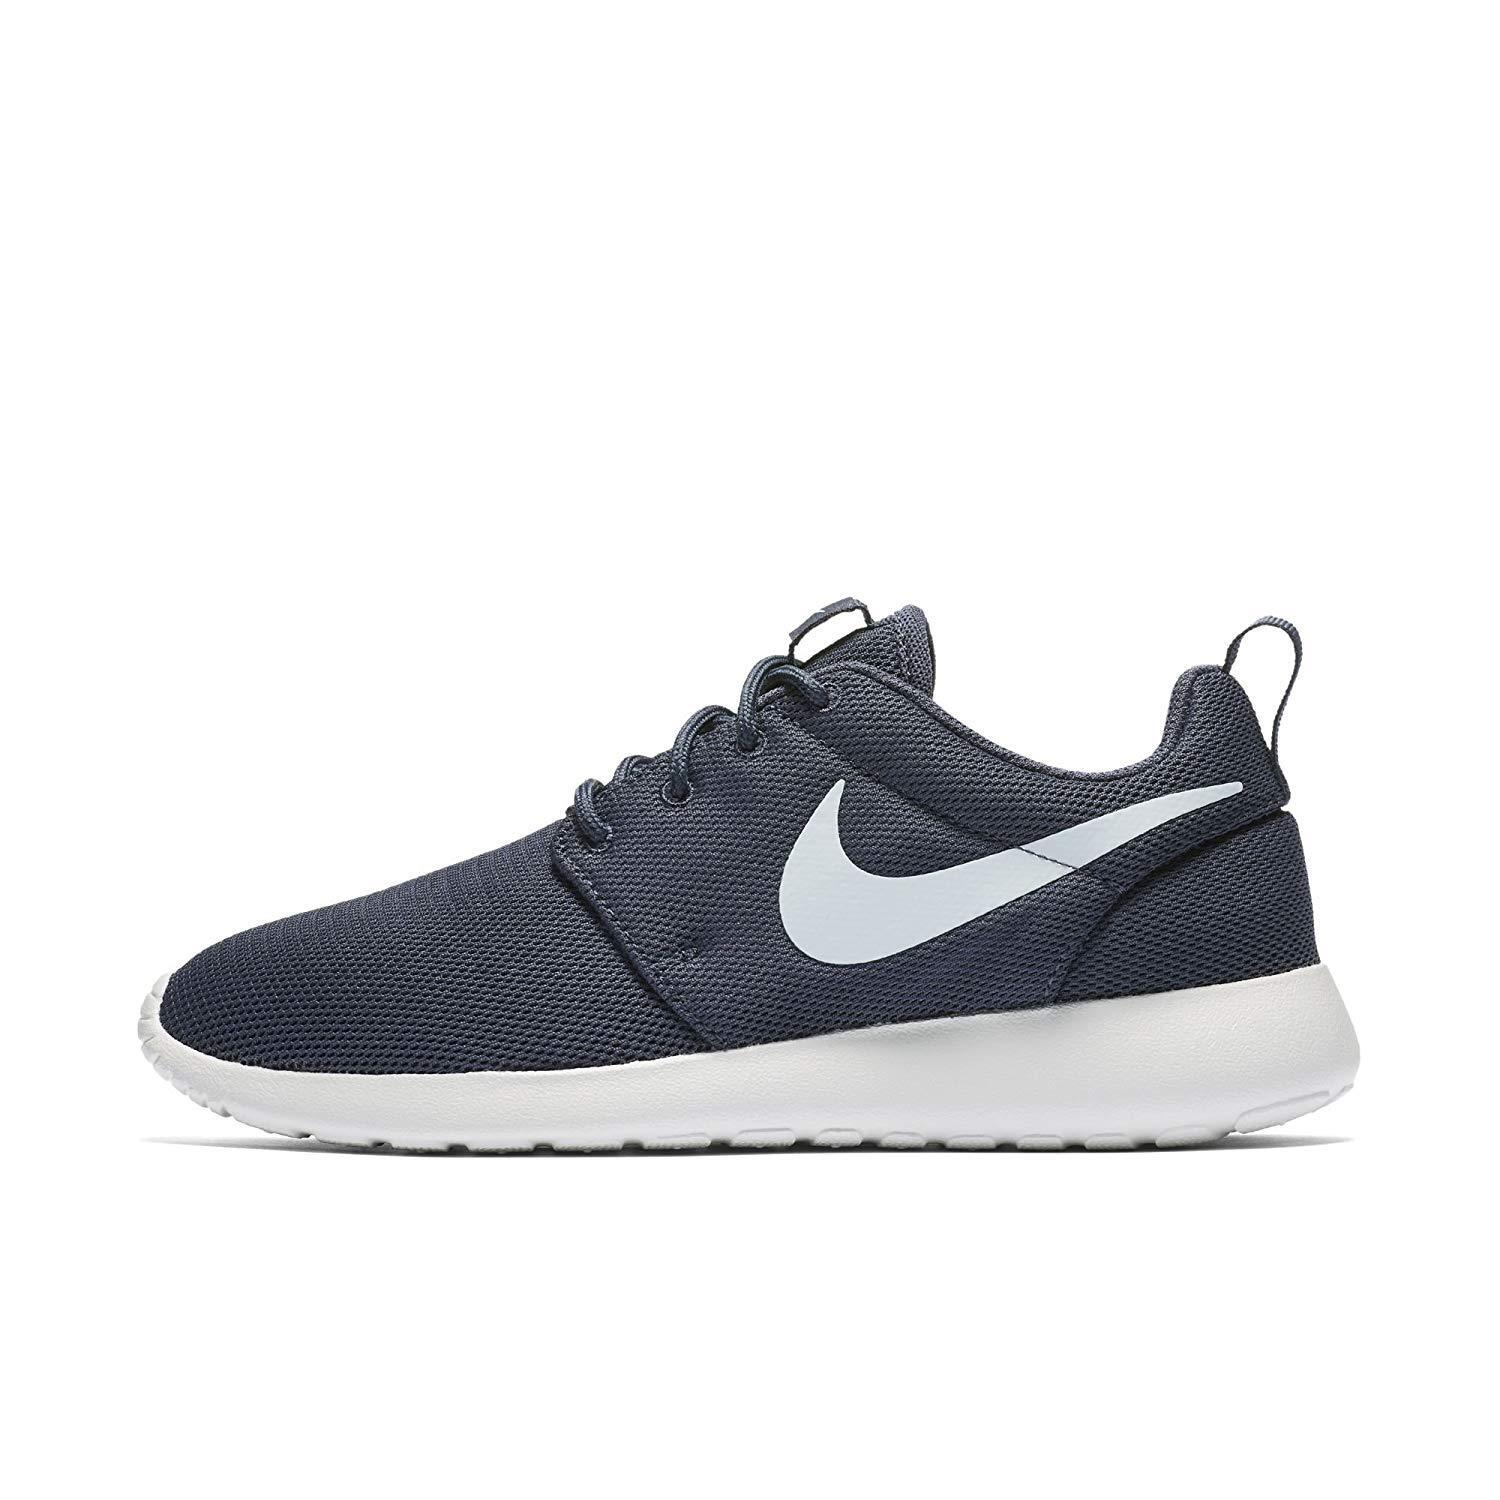 NEW Women's Nike Roshe One Shoes Thunder Blue White Trainers Free 844994-404